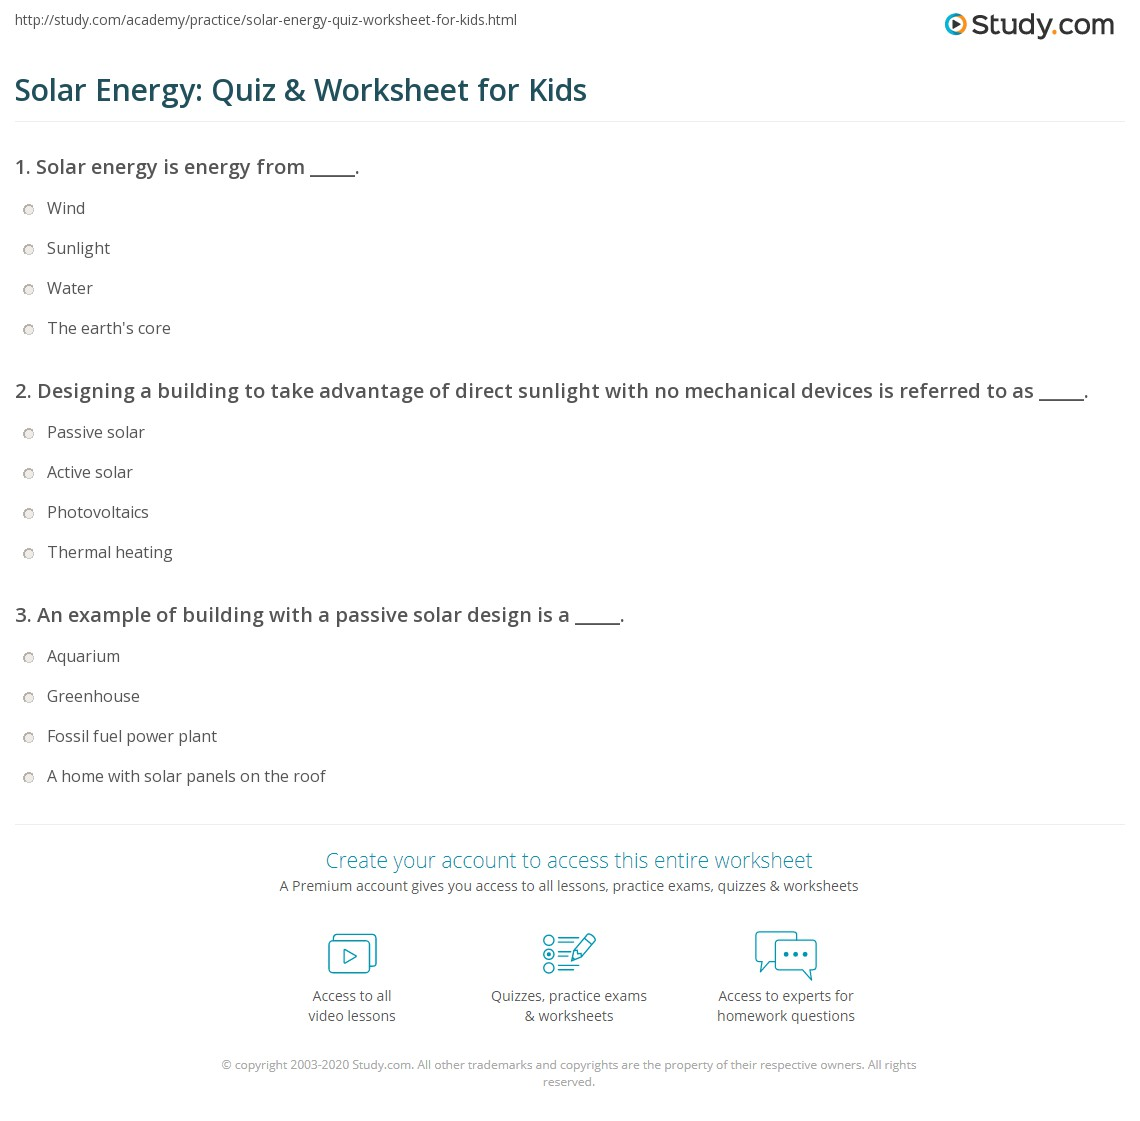 Solar Energy: Quiz & Worksheet for Kids | Study.com